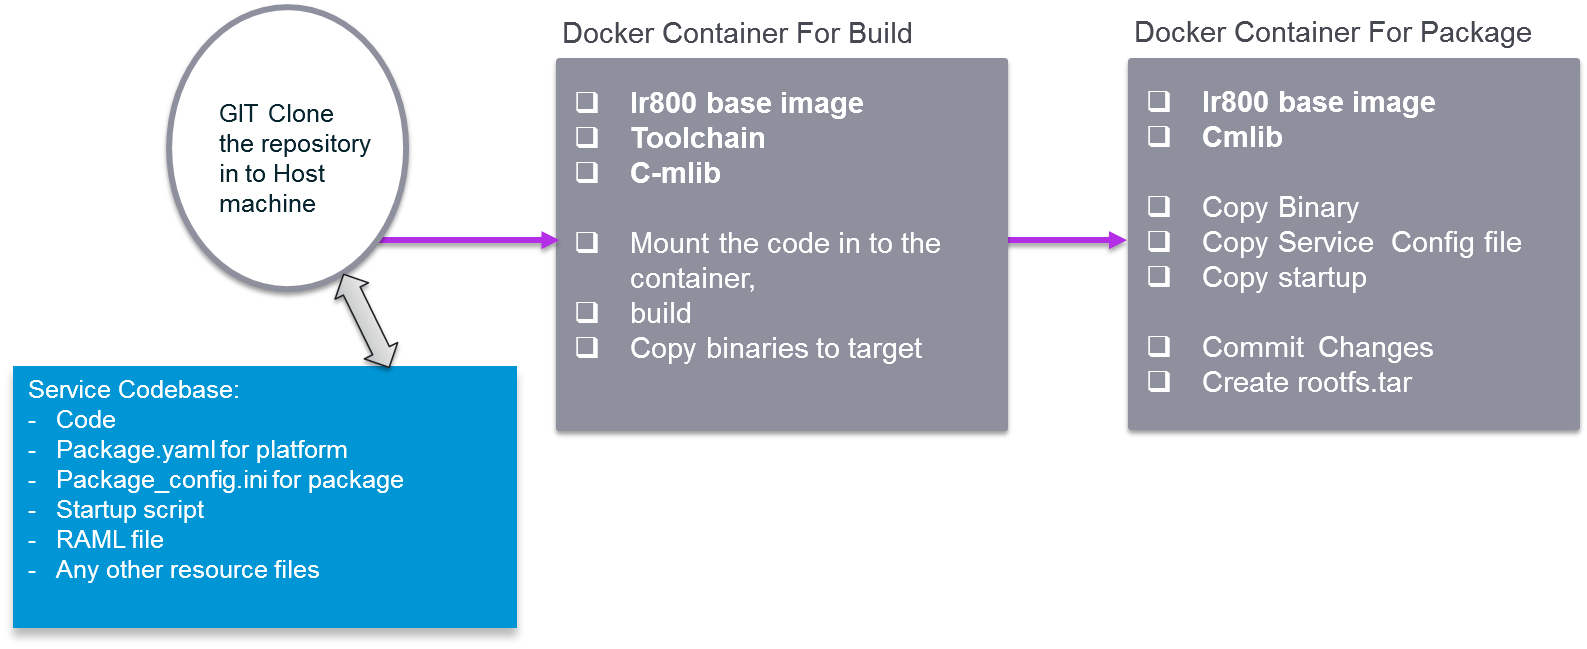 Docker Style Packaging - iox-docs - Document - Cisco DevNet